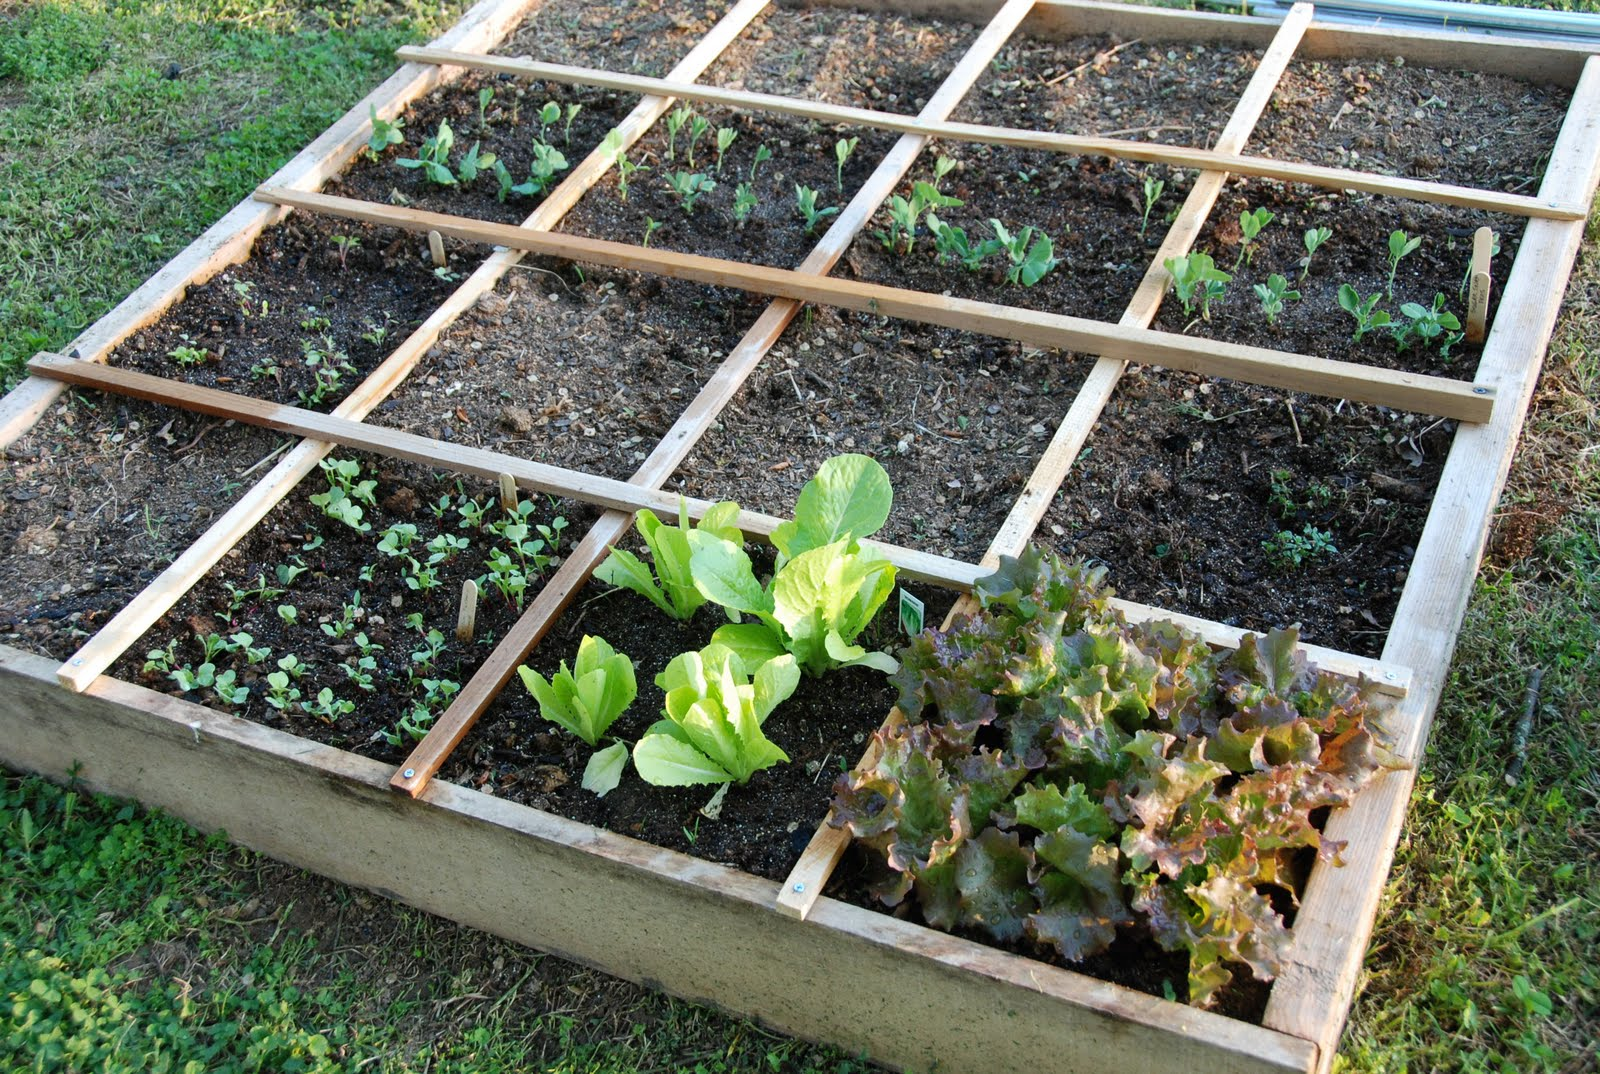 Square Foot Gardening Prepper Resourcescom The